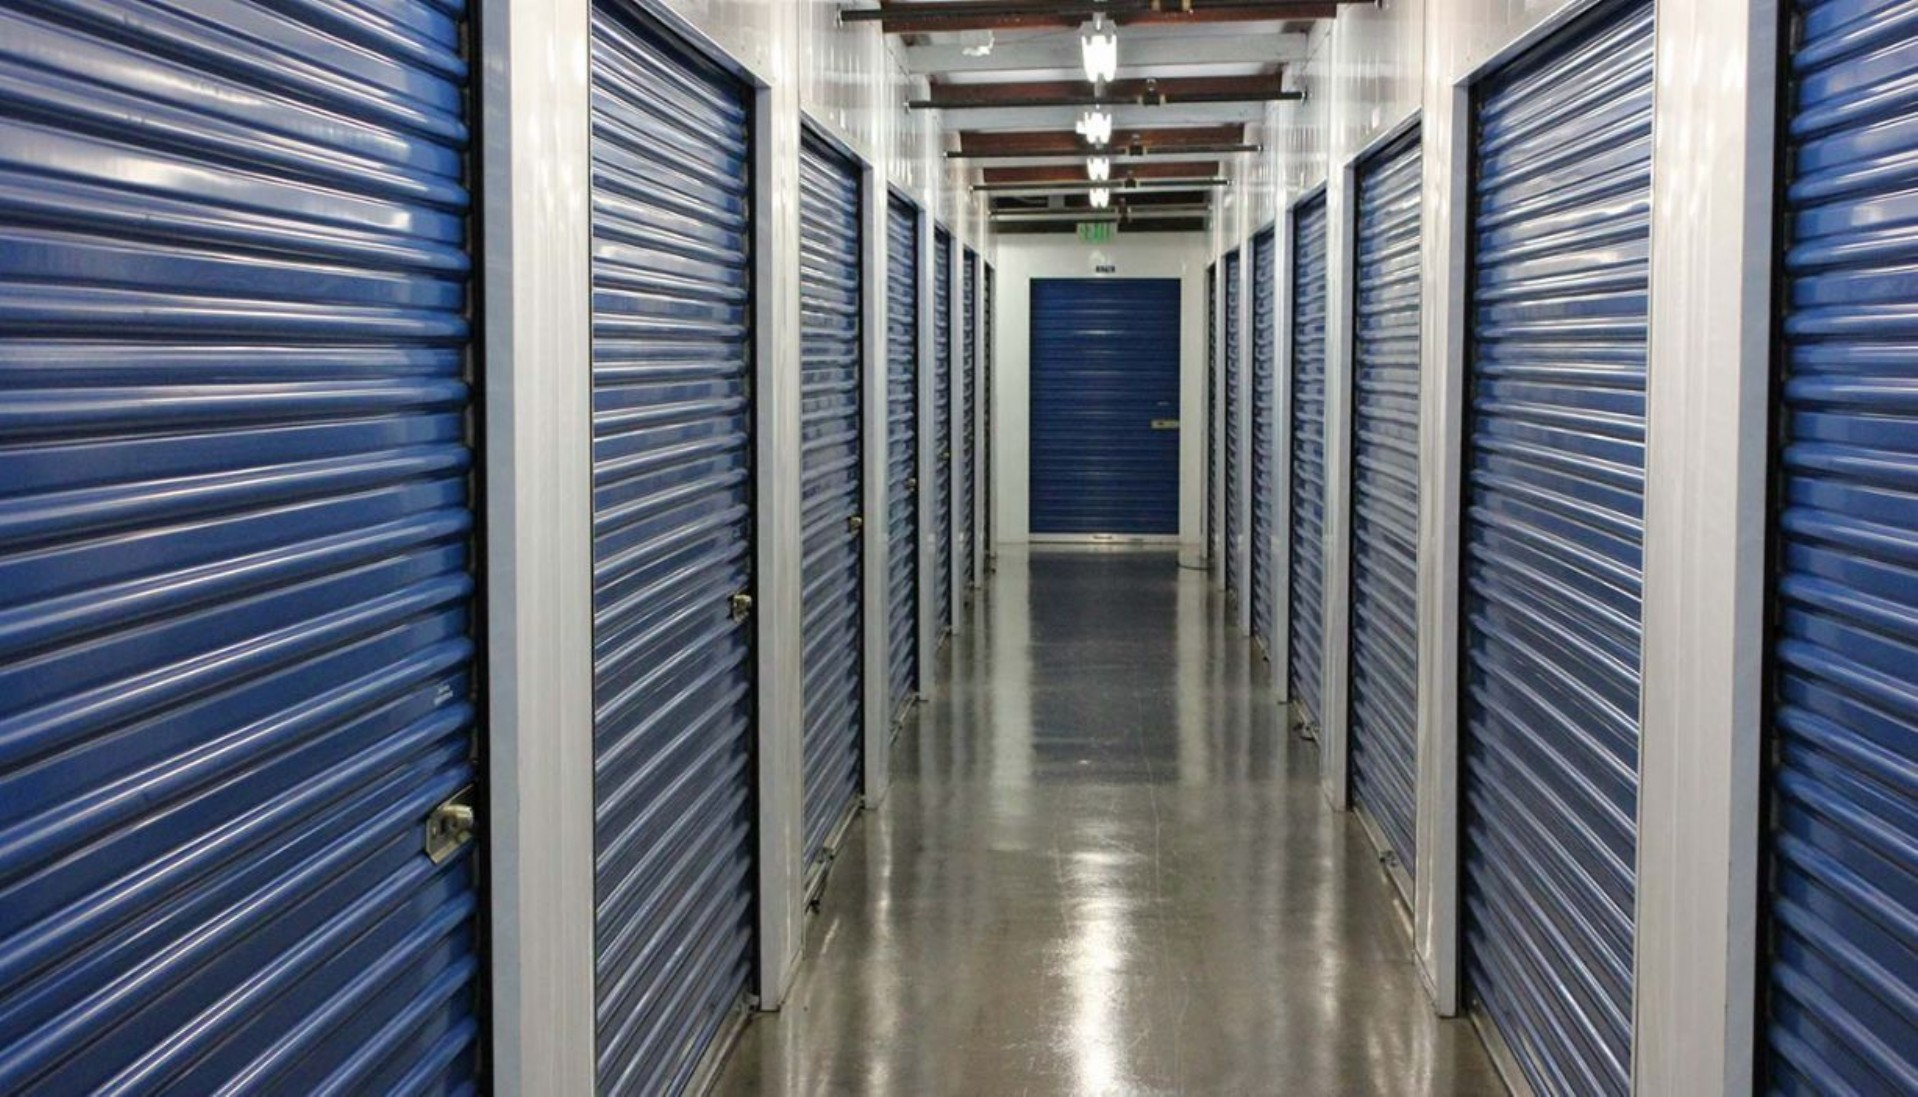 Price Self Storage Walnut Creek interior hallway with large sized storage units with roll up doors